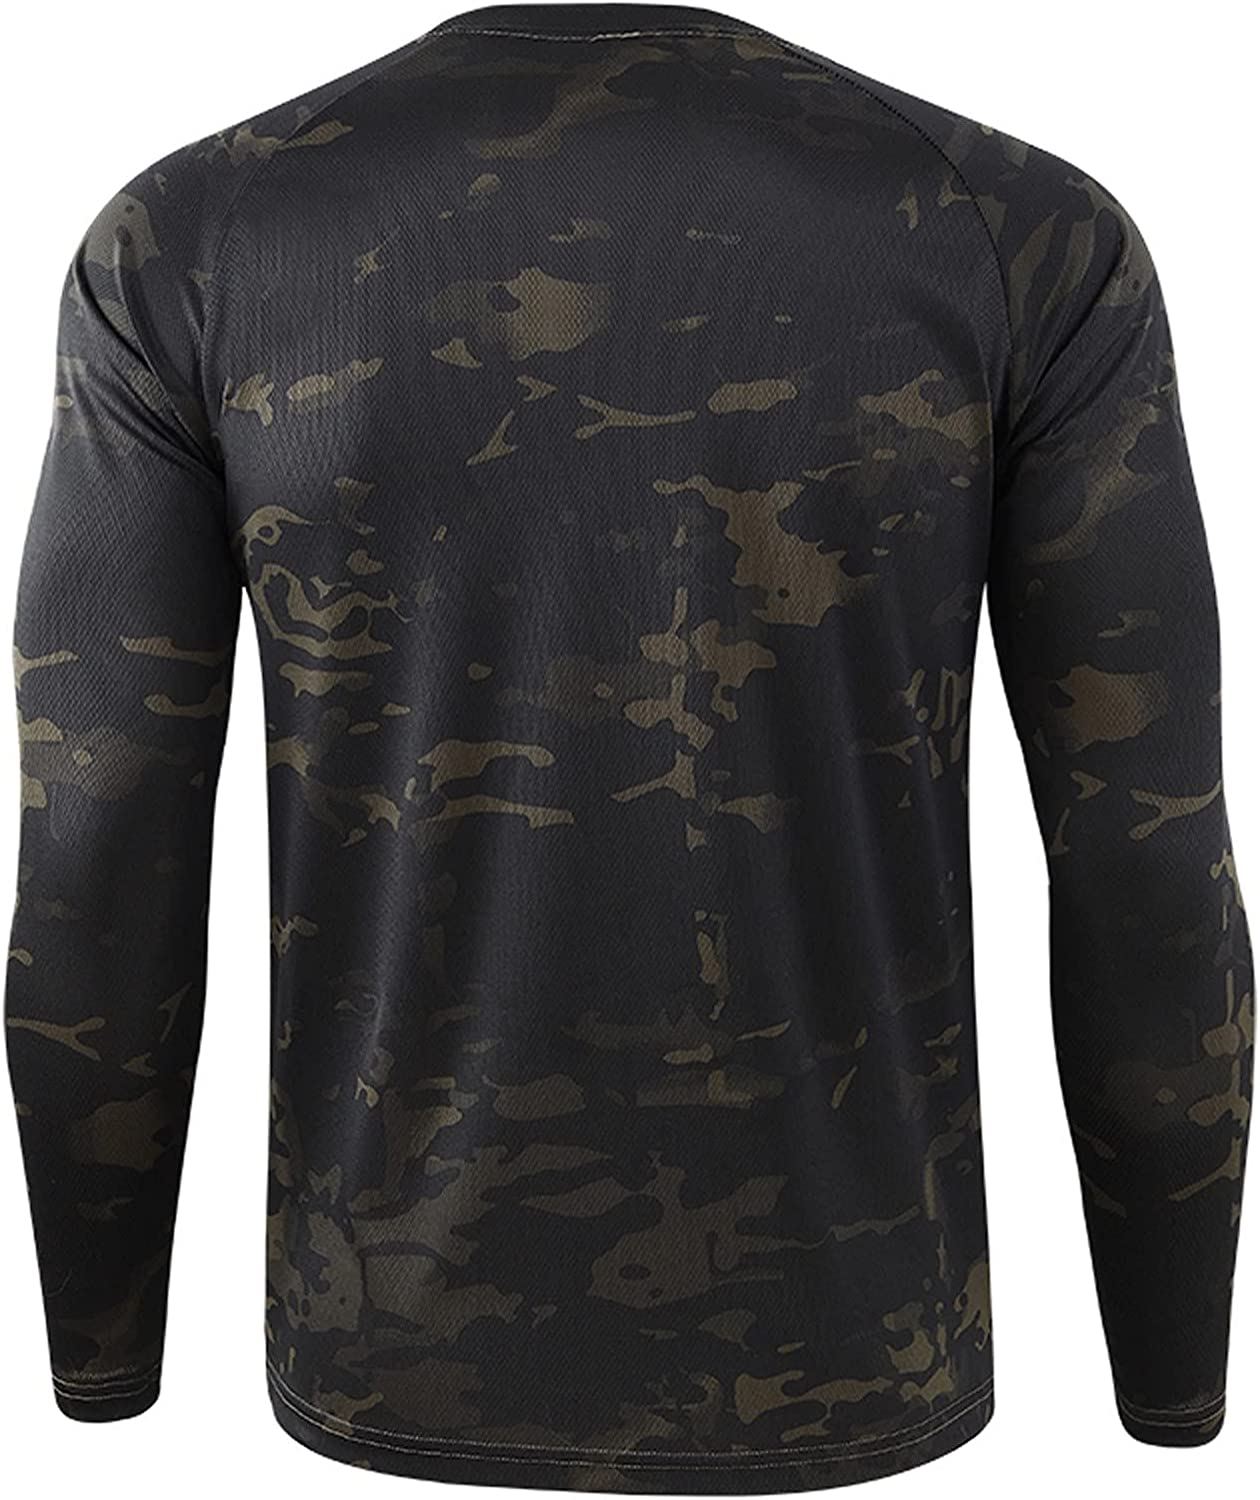 Mens Camouflage T-Shirts Crew Neck Tees Long Sleeve Vintage Camo Athletic Stretch Lightweight Outdoor Field Top Blouse